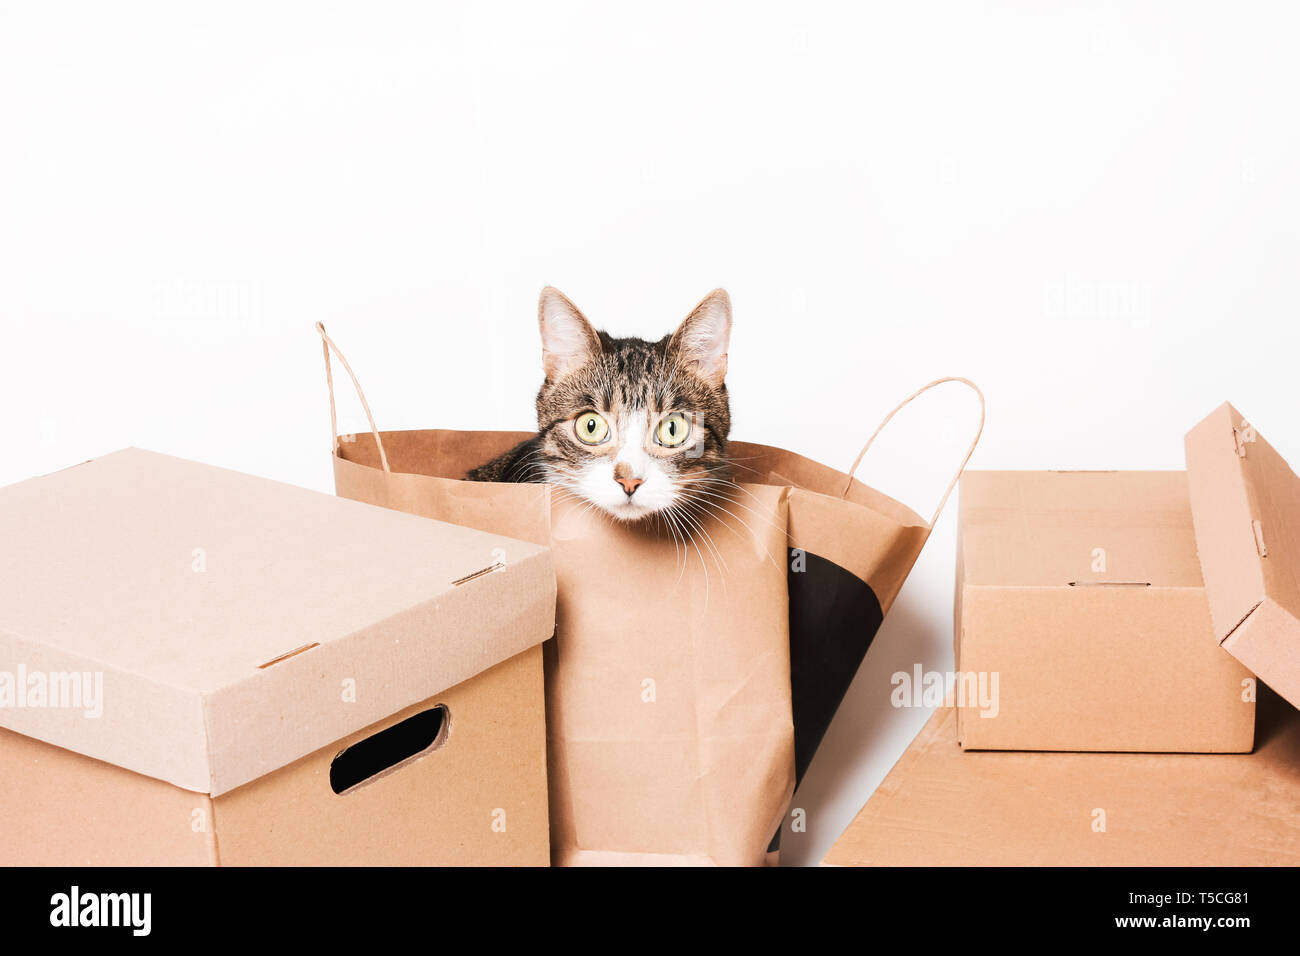 Cute cat looks out of the crafting package. Cardboard boxes. Eco-friendly packaging - Stock Image